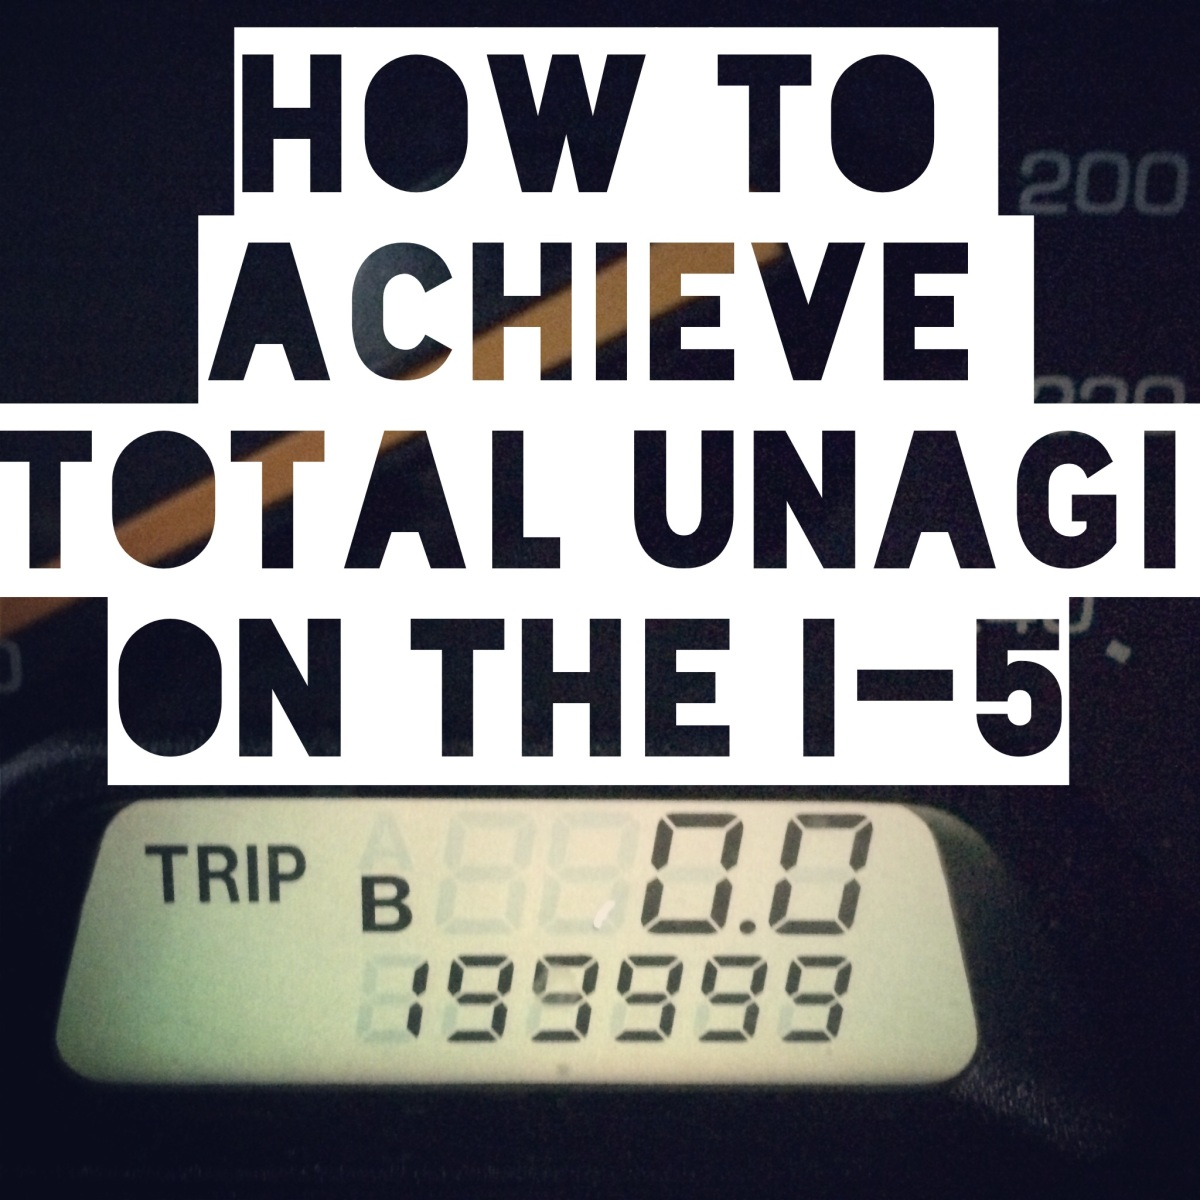 How to achieve total Unagi in traffic